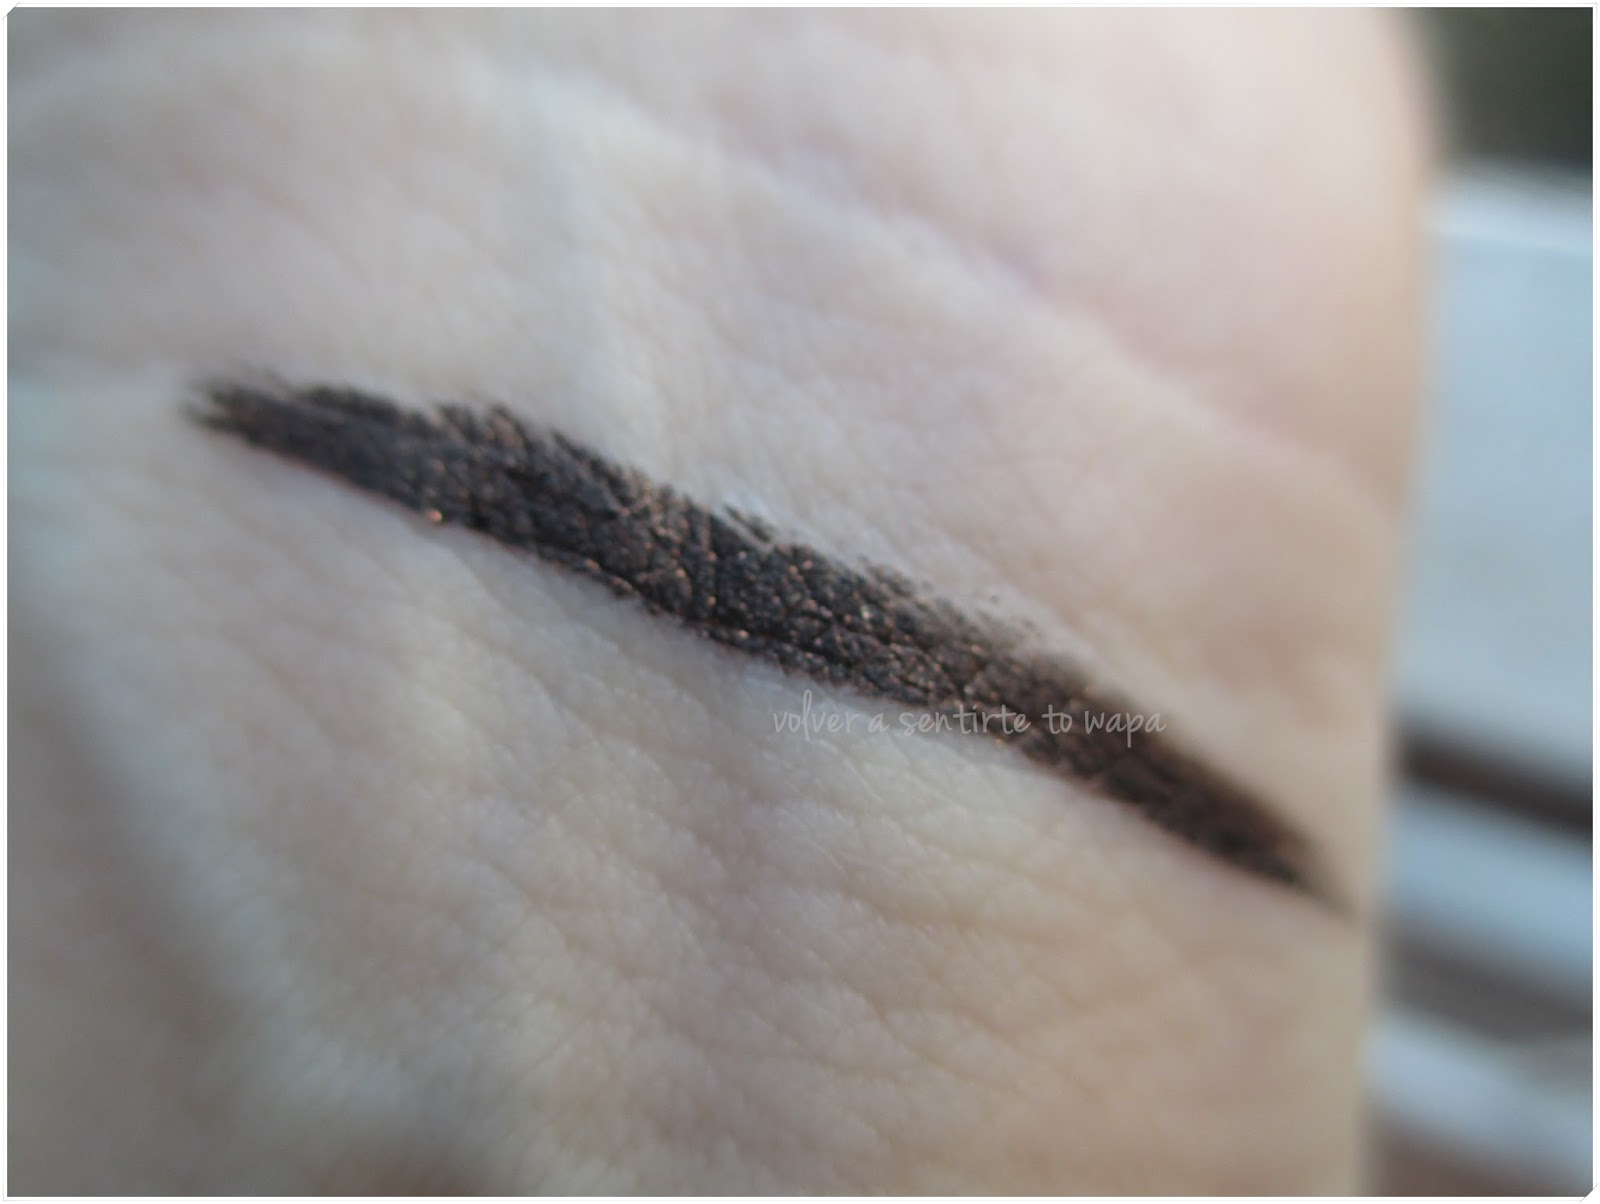 Bobbi Brown - Colección Scotch on the Rocks - Long-Wear Gel Liner - tono Black Scotch & Swatch